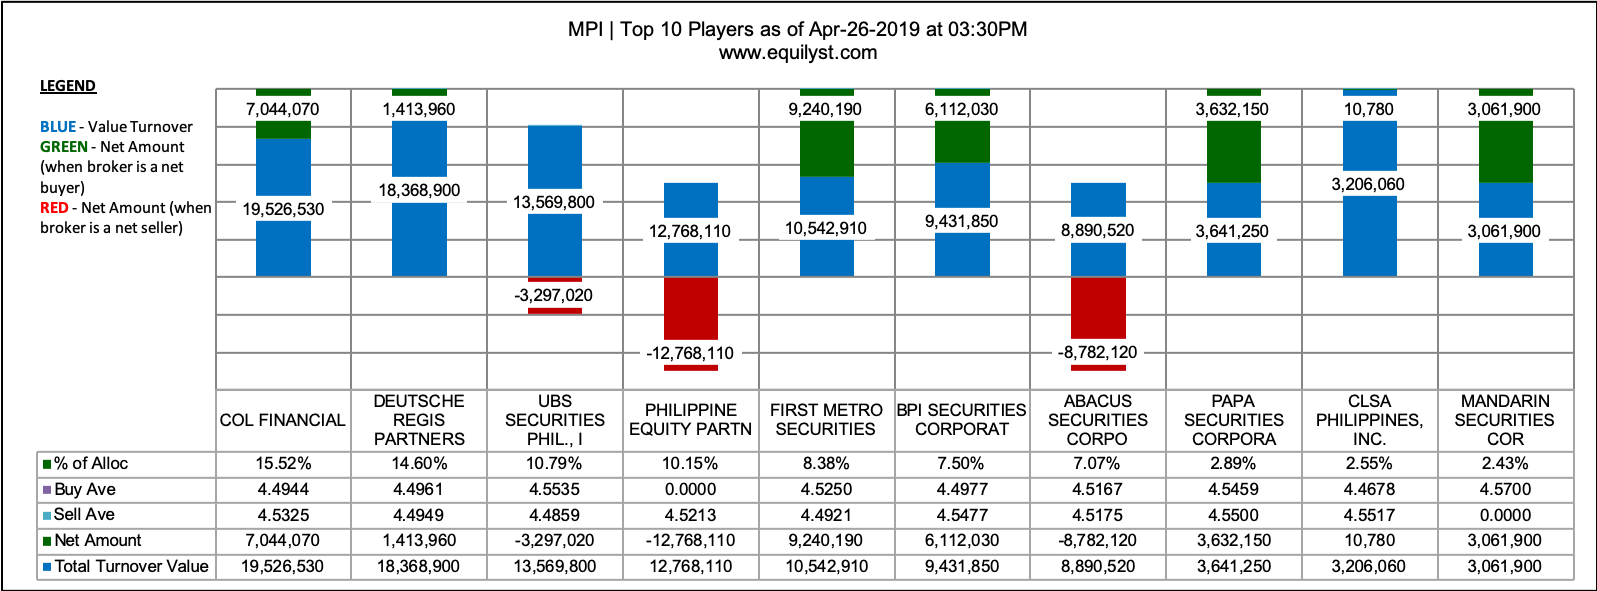 MPI - Top 10 Players - 4.26.2019